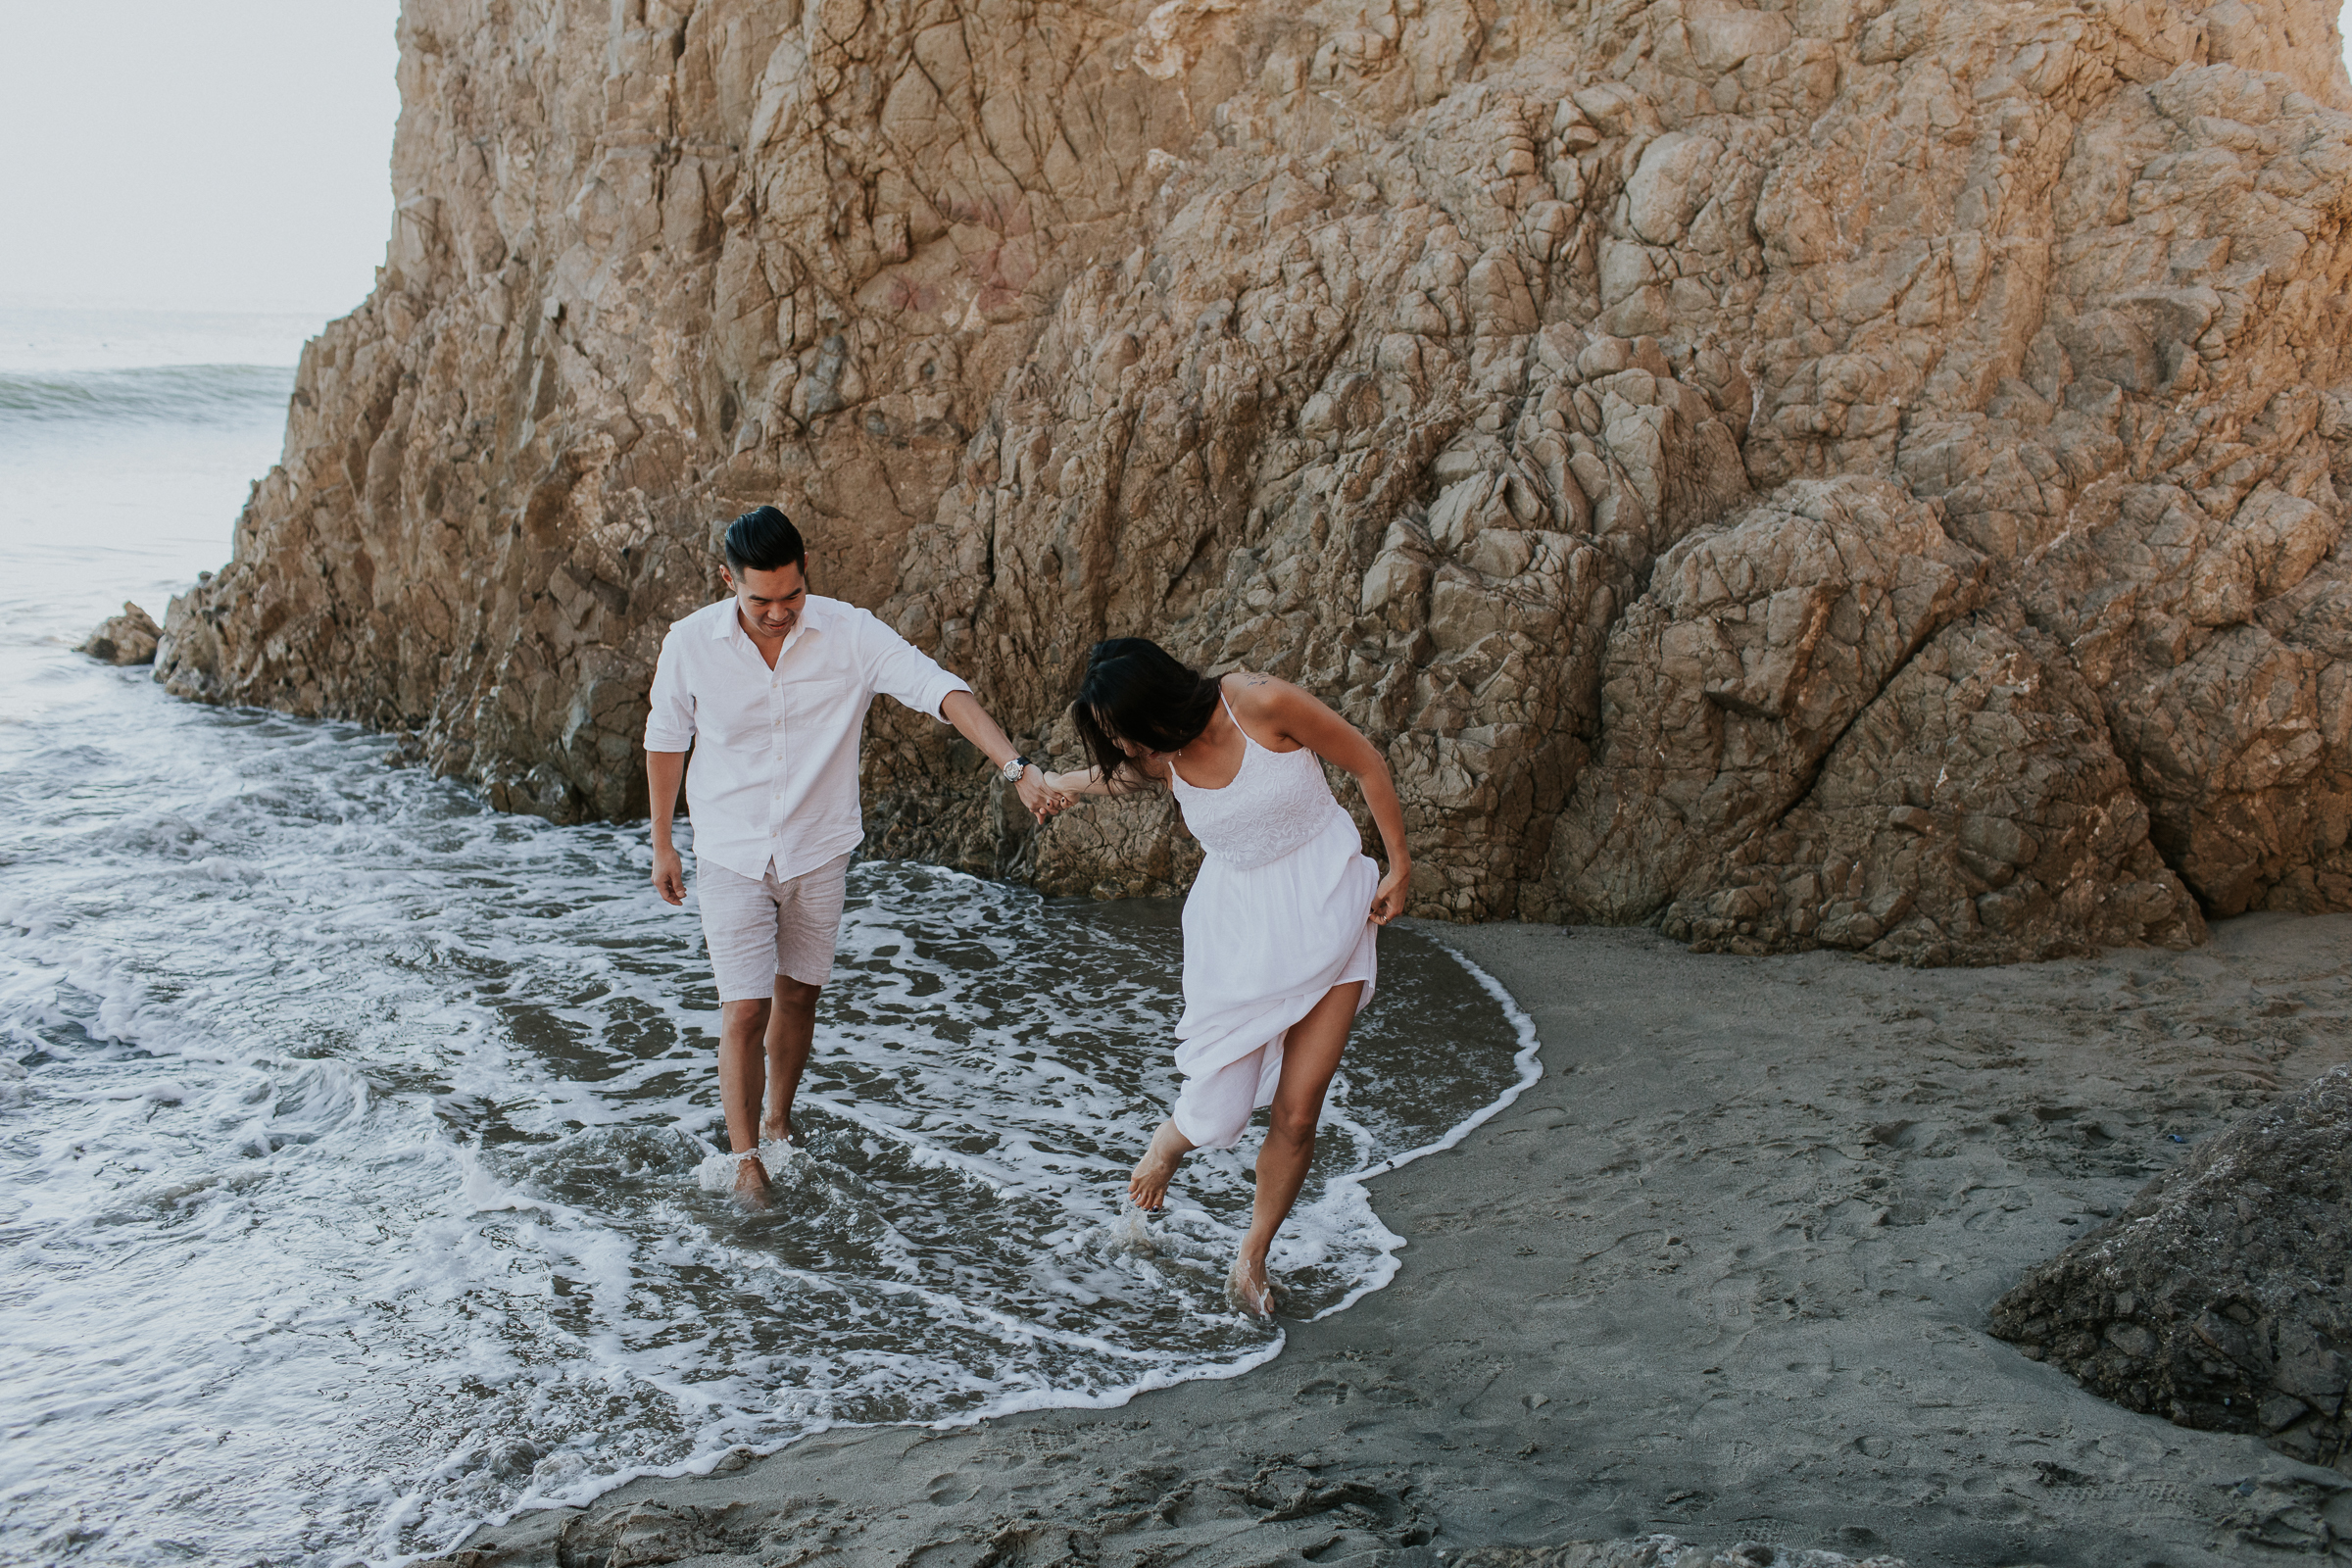 Malibu-El-Matador-State-Beach-Sunset-Engagement-Photos-Los-Angeles-Documentary-Wedding-Photographer-9.jpg